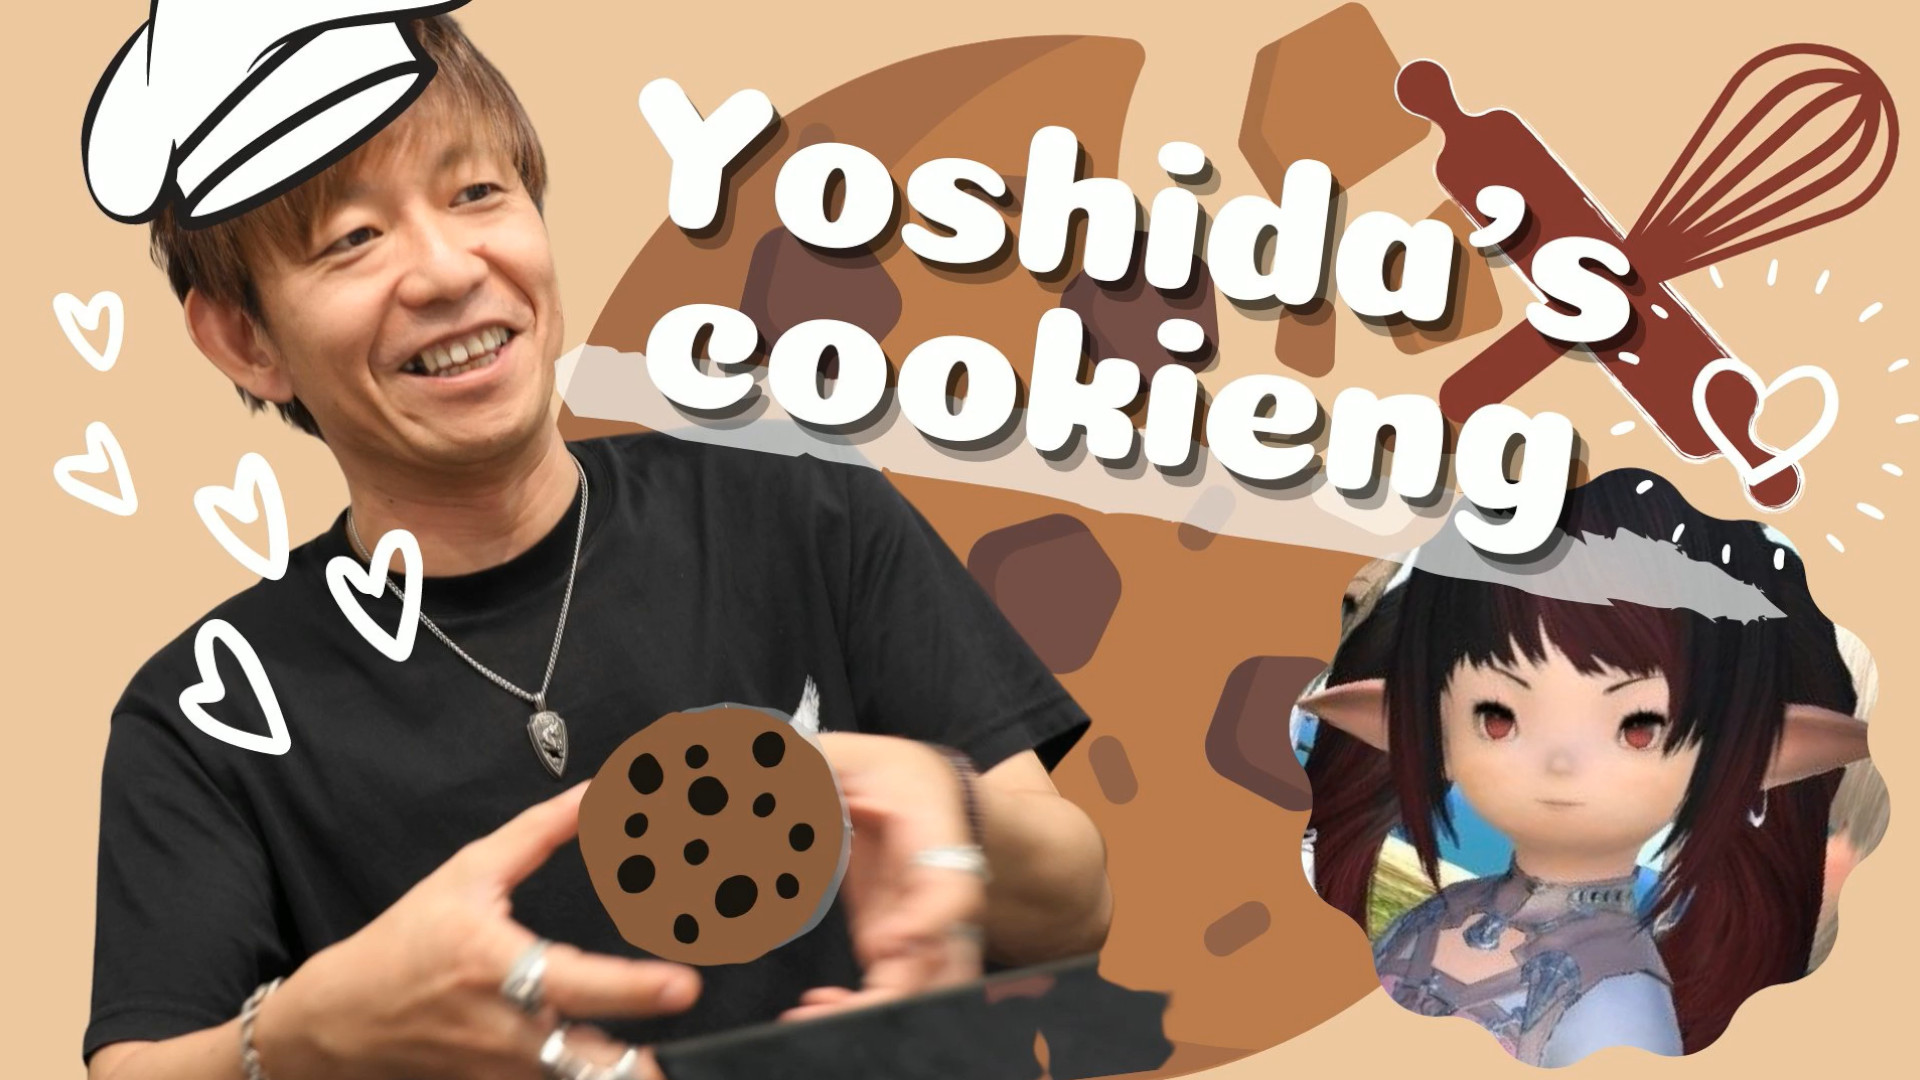 FFXIV director hits Twitch to share his coffee cookie recipe and drink wine